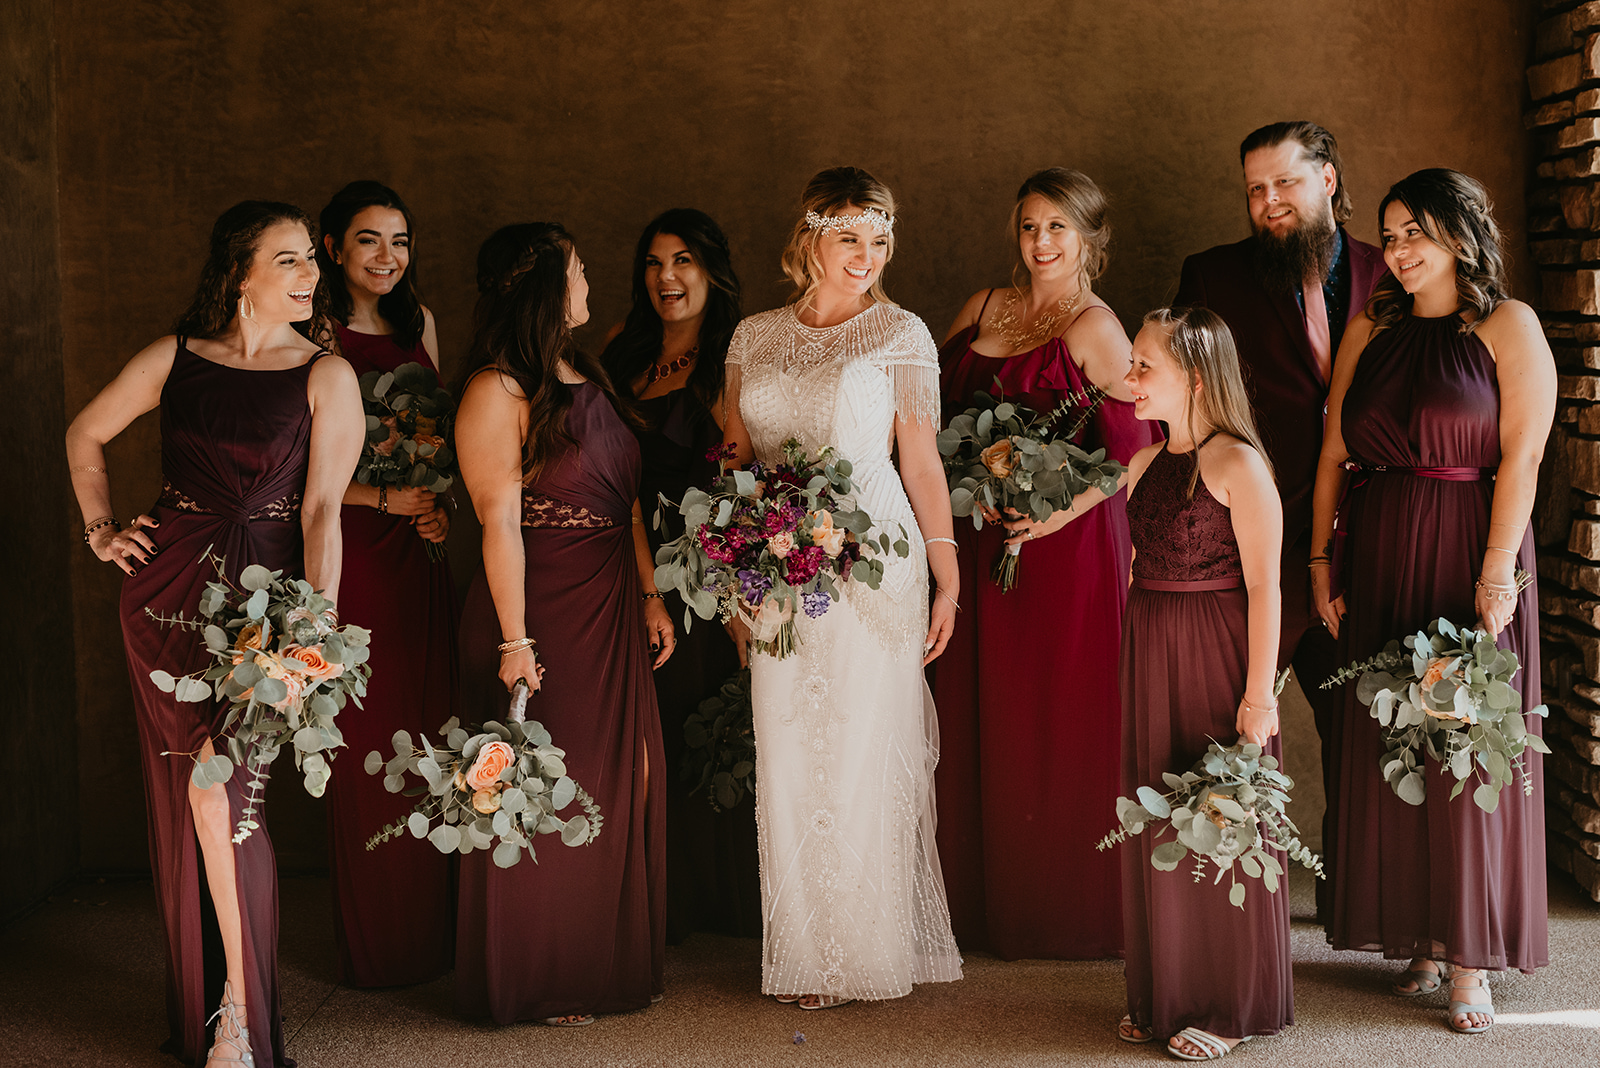 Backyard Las Vegas Wedding - Bridal Party